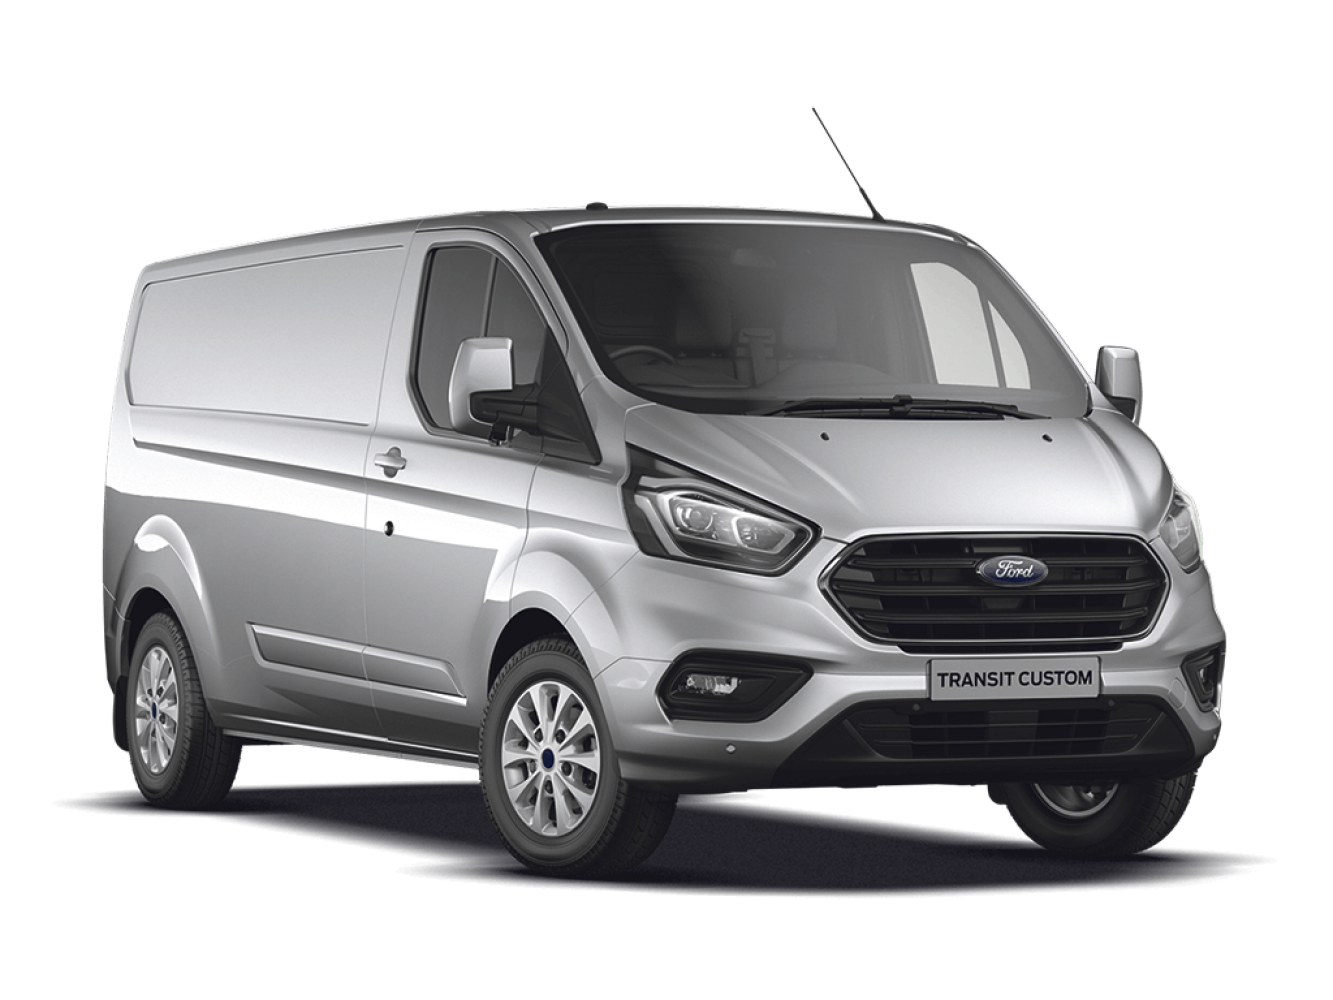 new ford transit custom 320 l1 diesel fwd 2 0 ecoblue 170ps low roof limited van auto for sale. Black Bedroom Furniture Sets. Home Design Ideas